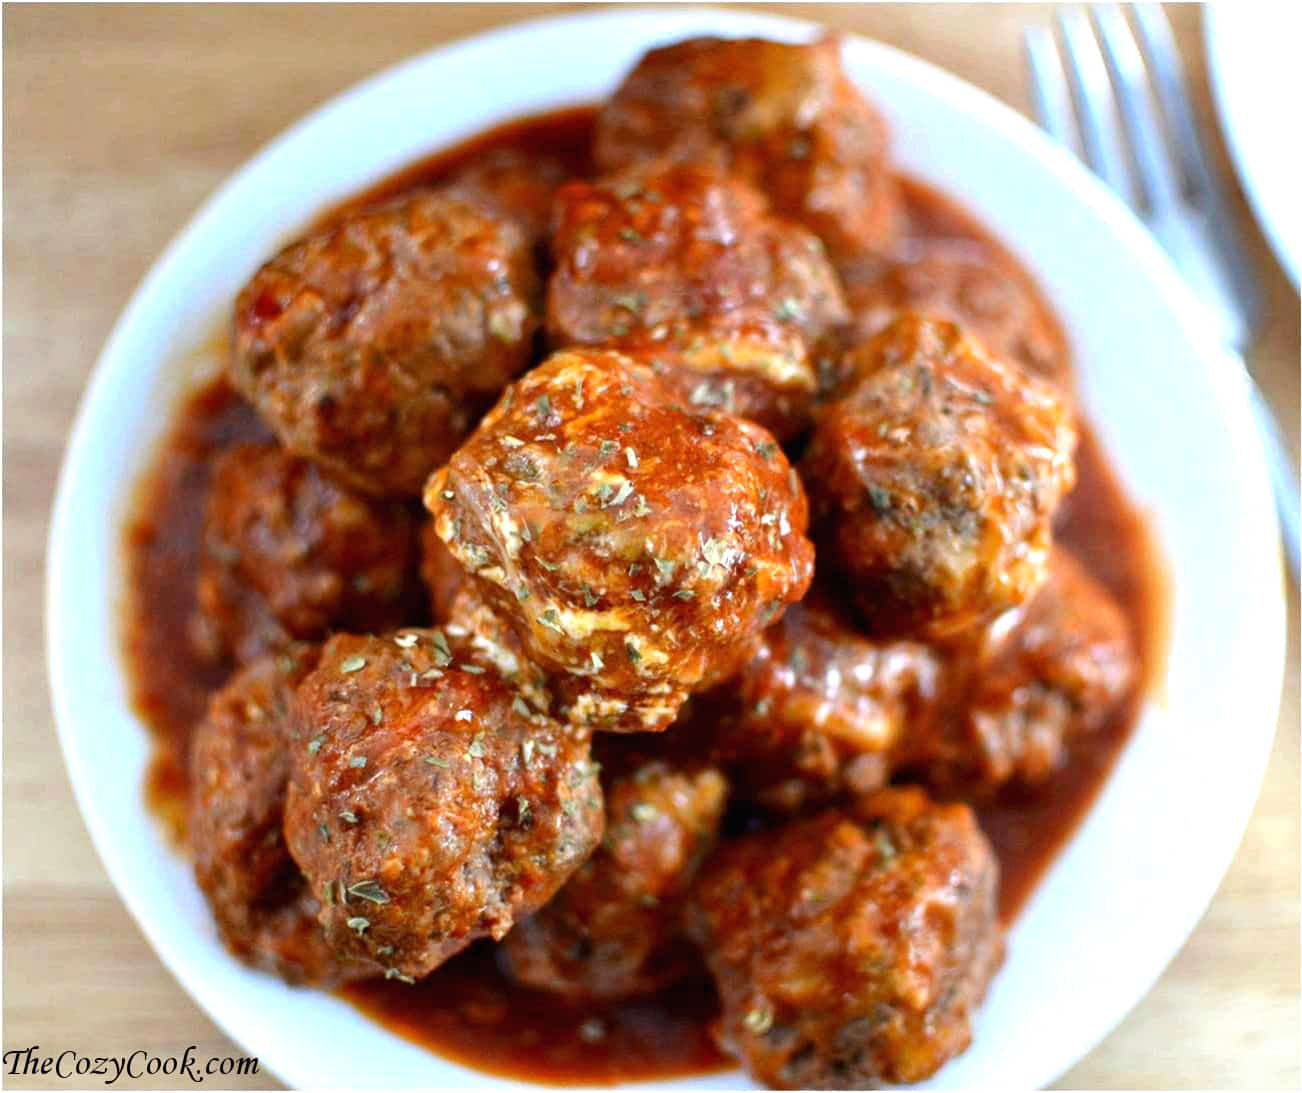 Bobby Flay's Meatball and Sauce Recipe